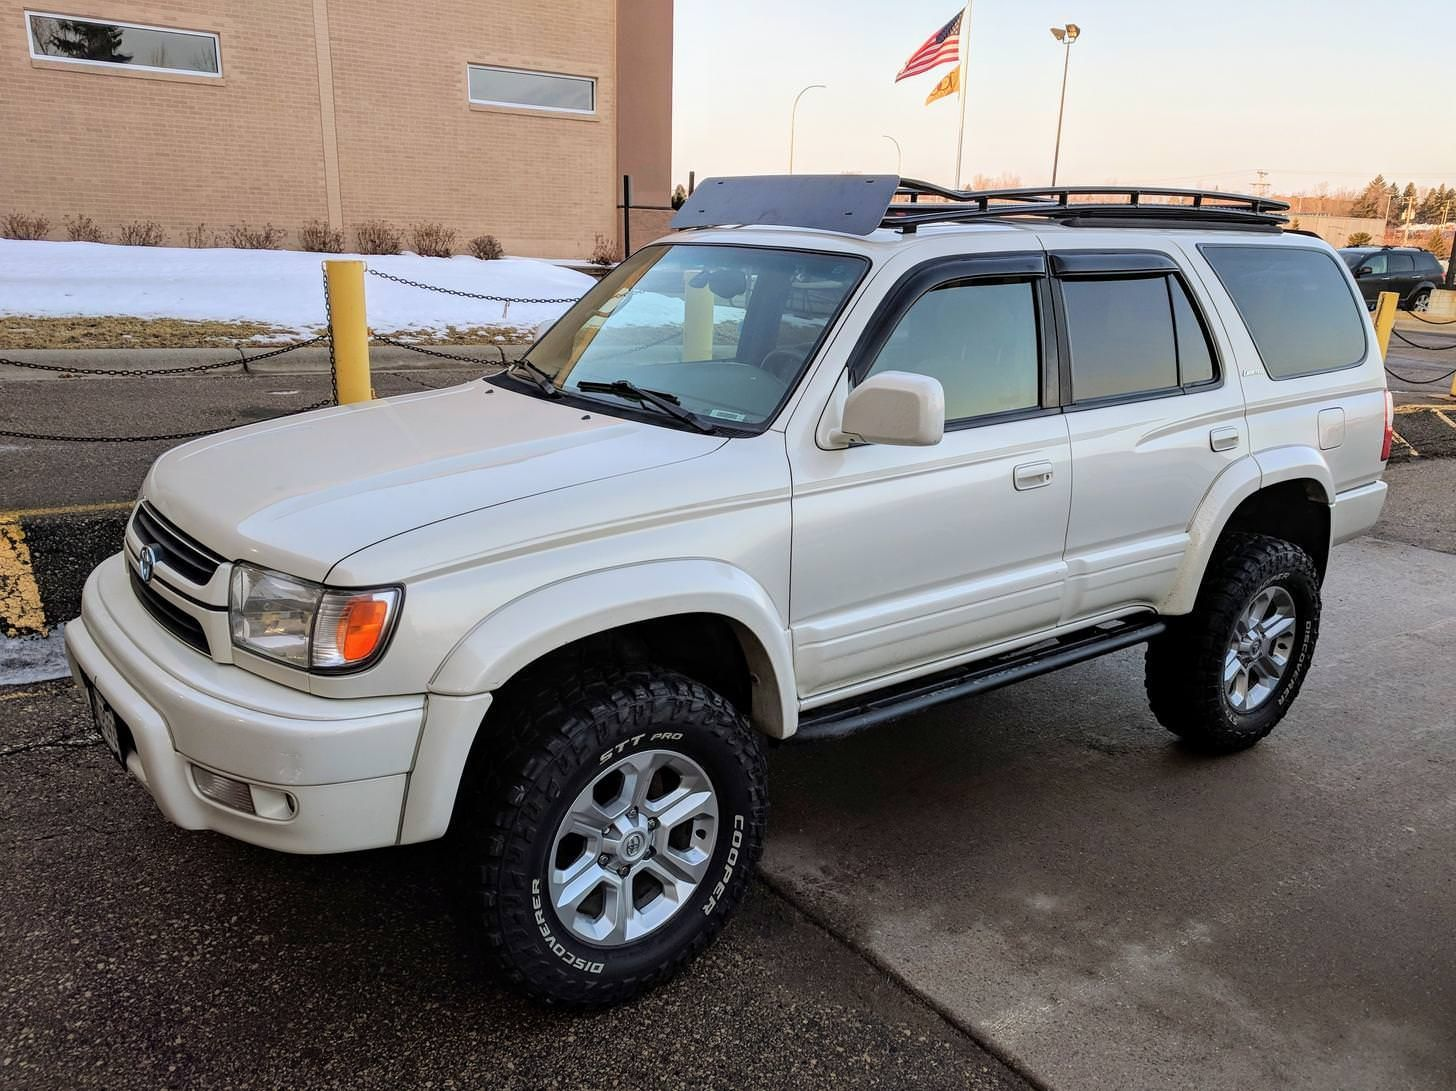 78 Reference Of Arb Roof Rack 3rd Gen 4runner In 2020 4runner 3rd Gen 4runner Roof Rack